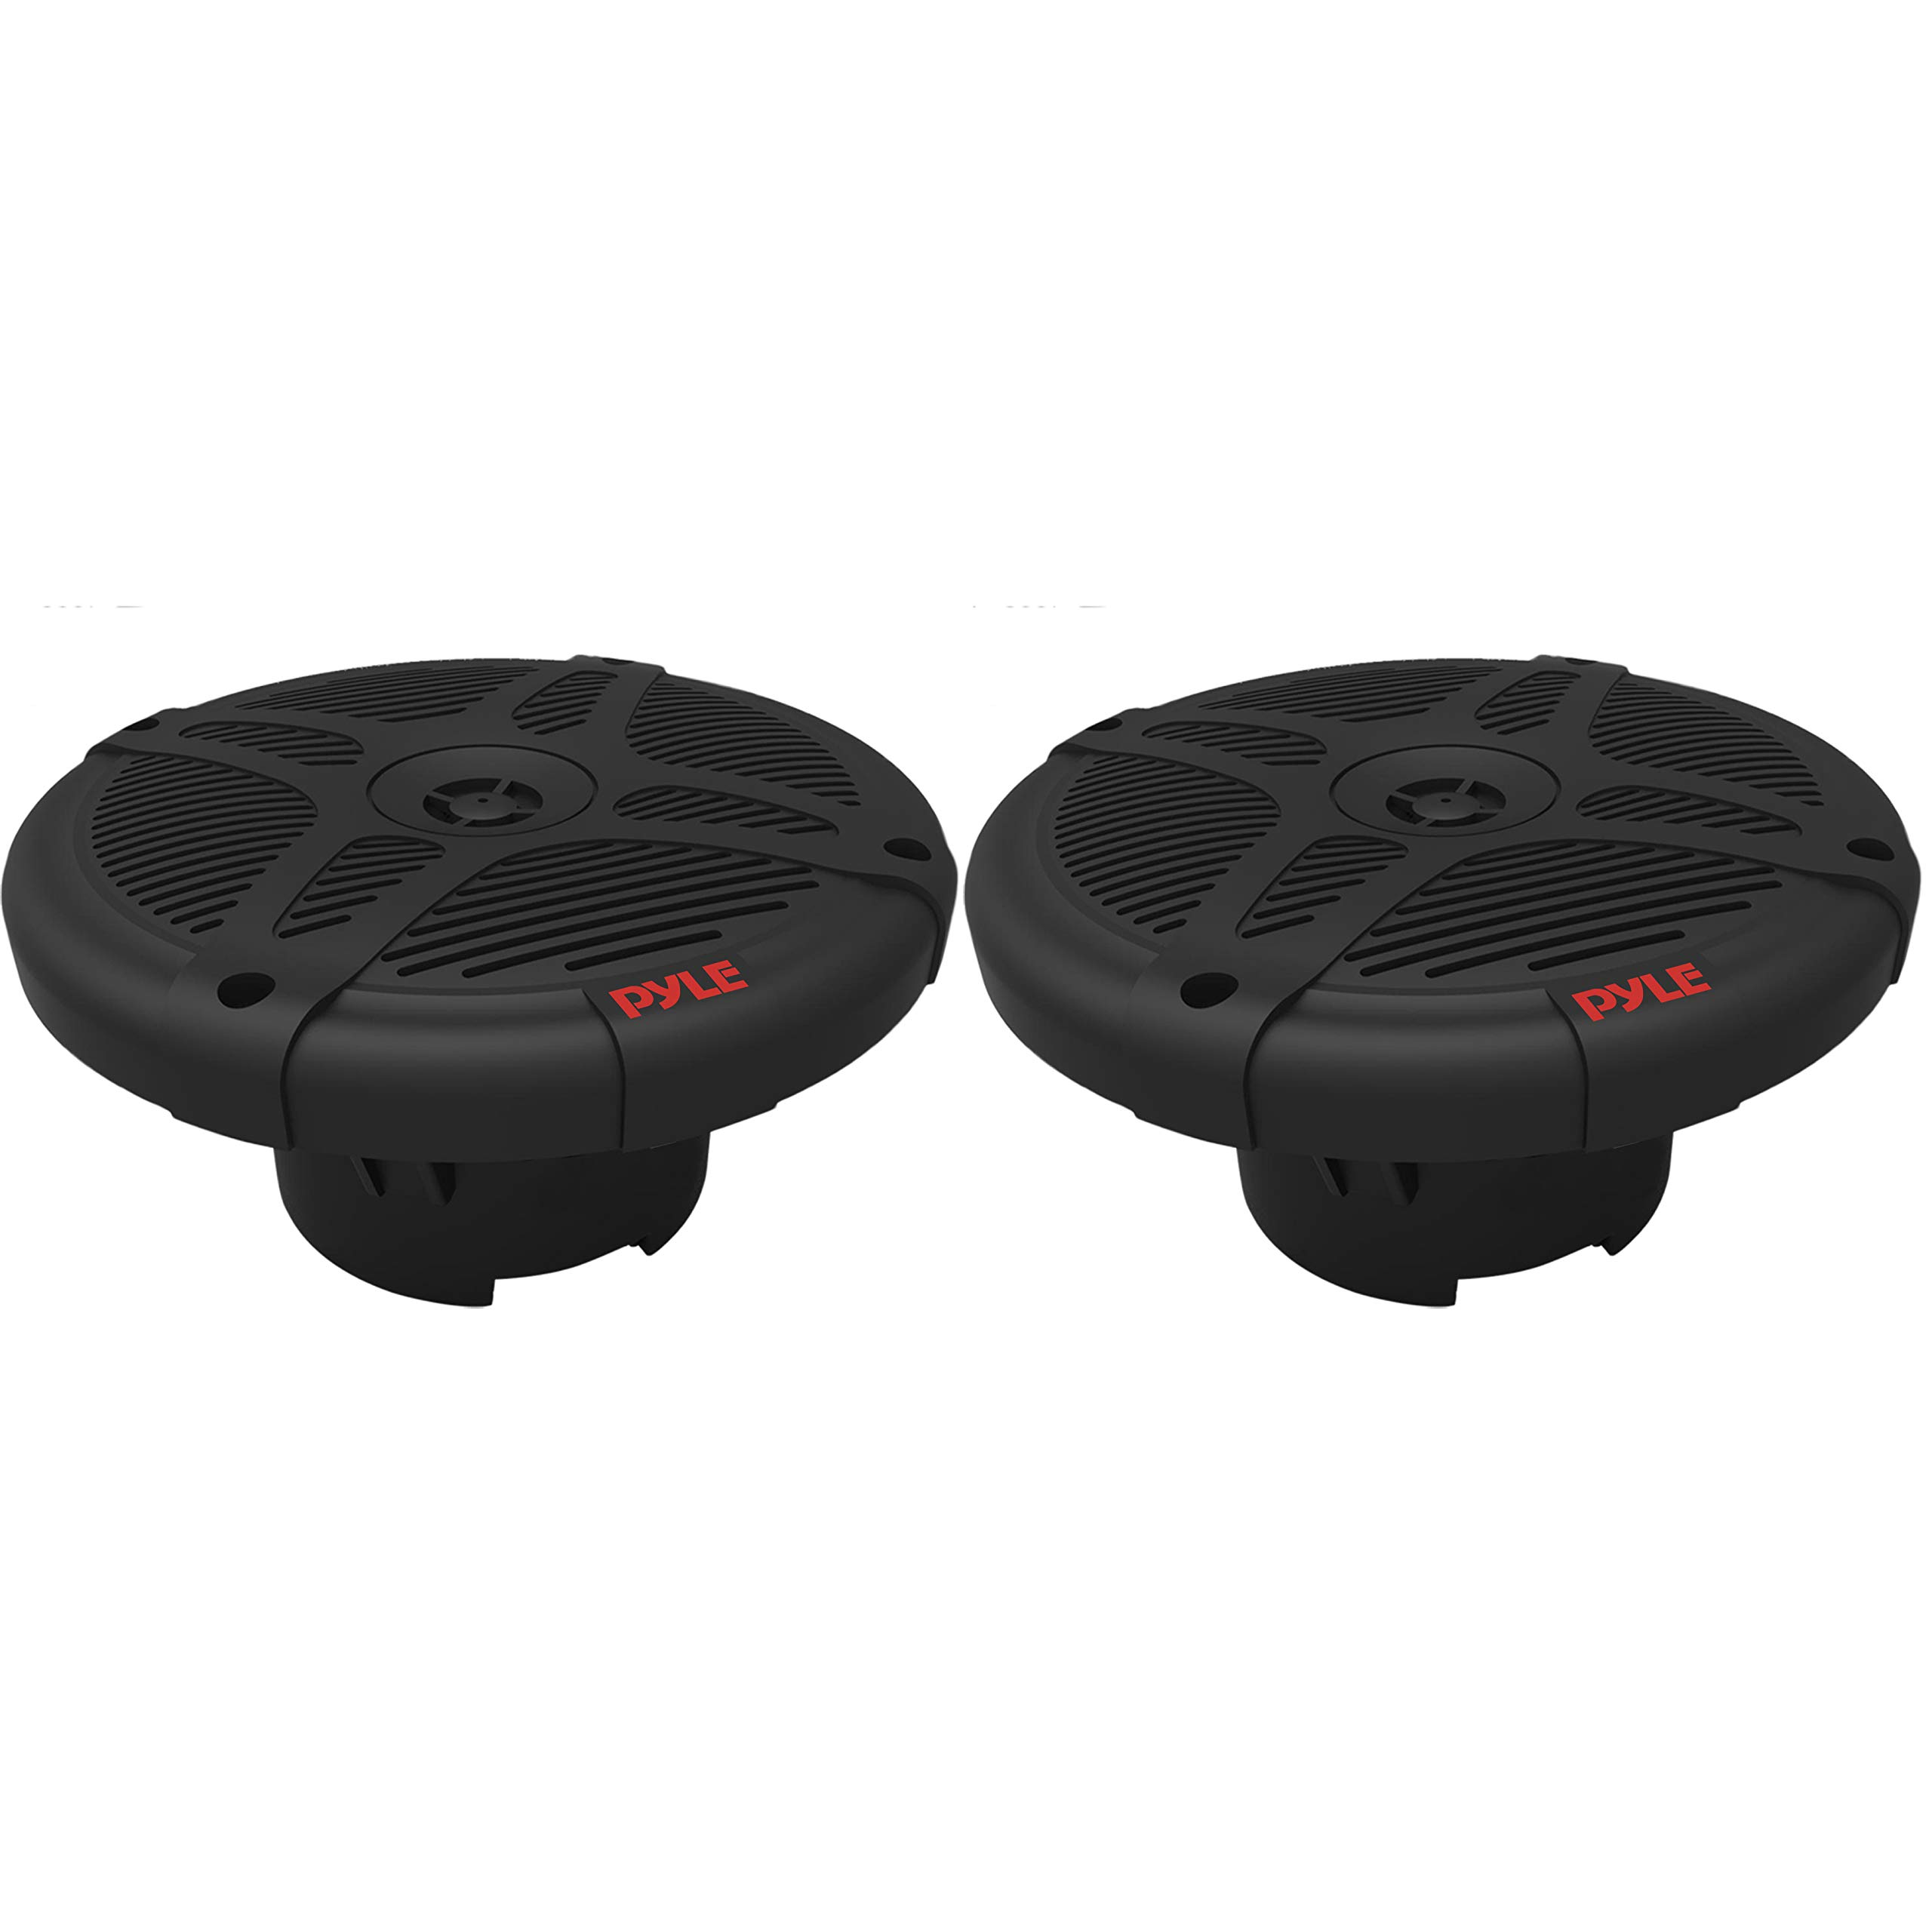 6.5 inch Dual Marine Speakers - Waterproof and Bluetooth Compatible 2-Way Coaxial Range Amplified Audio Stereo Sound System with Wireless RF Streaming and 600 Watt Power - 1 Pair - PLMRF65SB (Black)